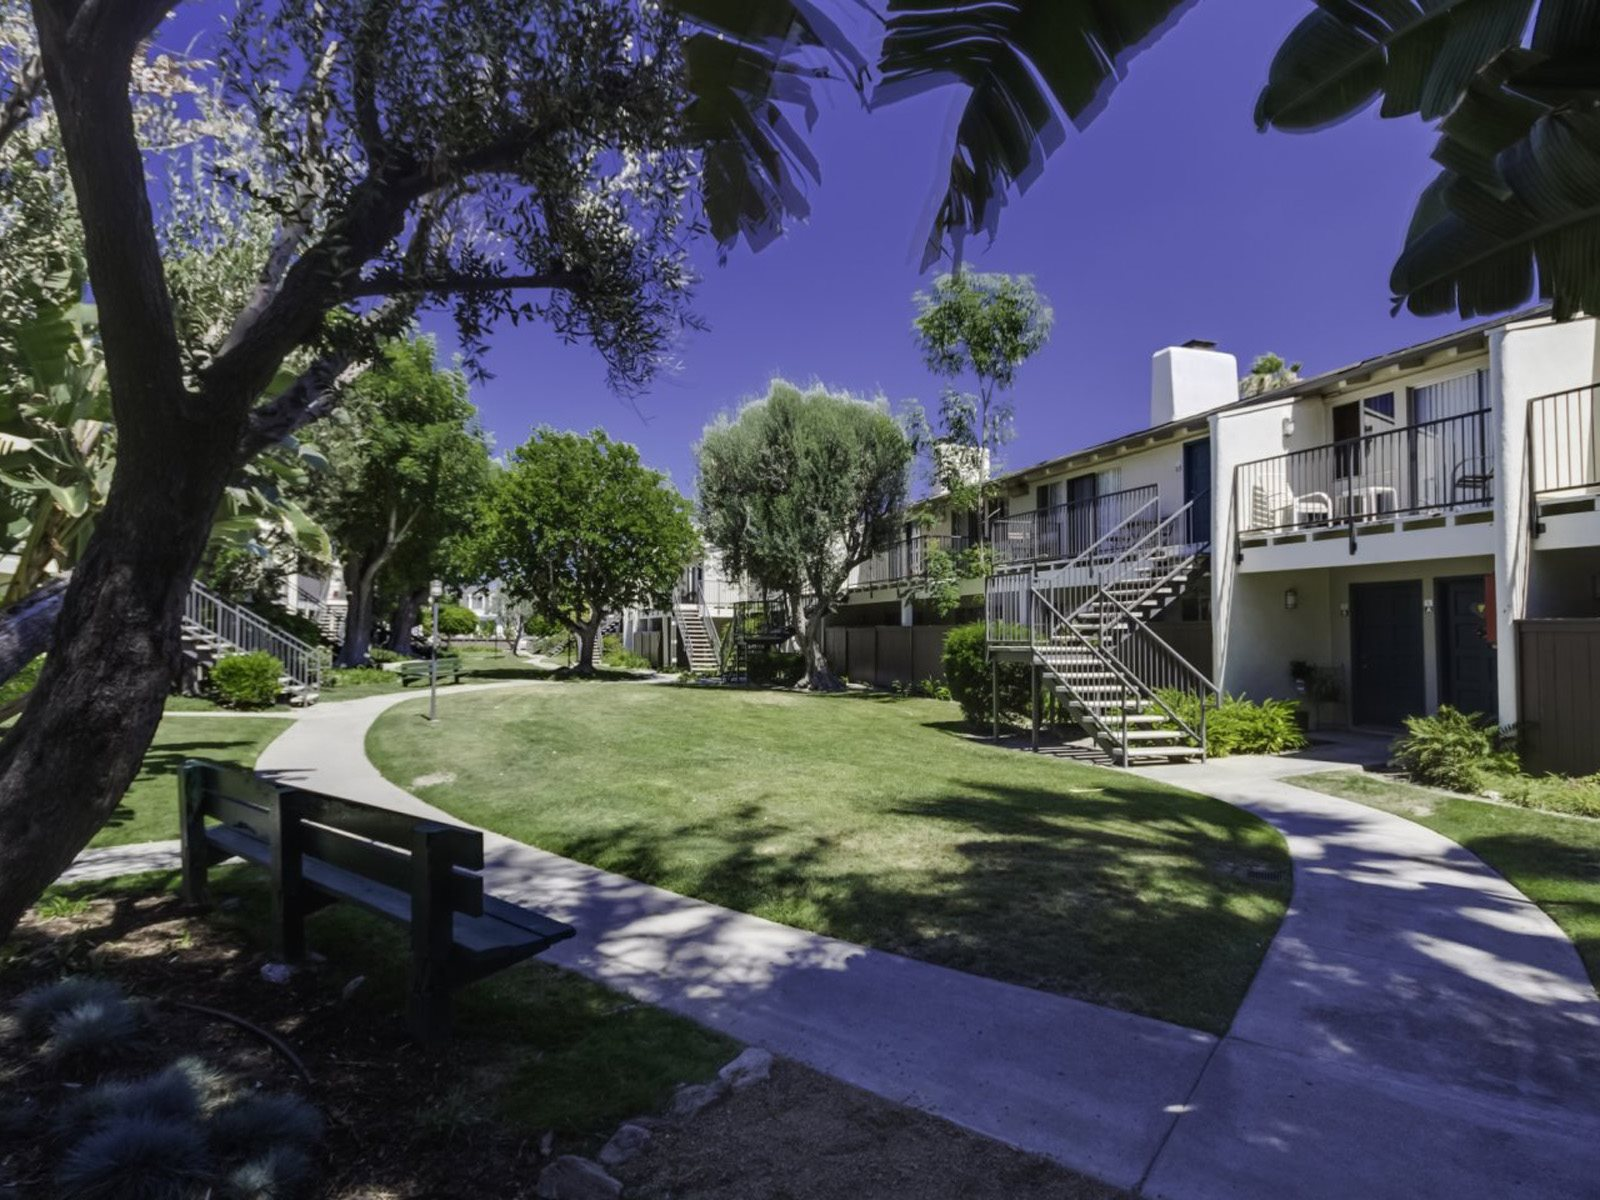 Garden grove apartments for rent park grove apartments - Crystal view apartments garden grove ...